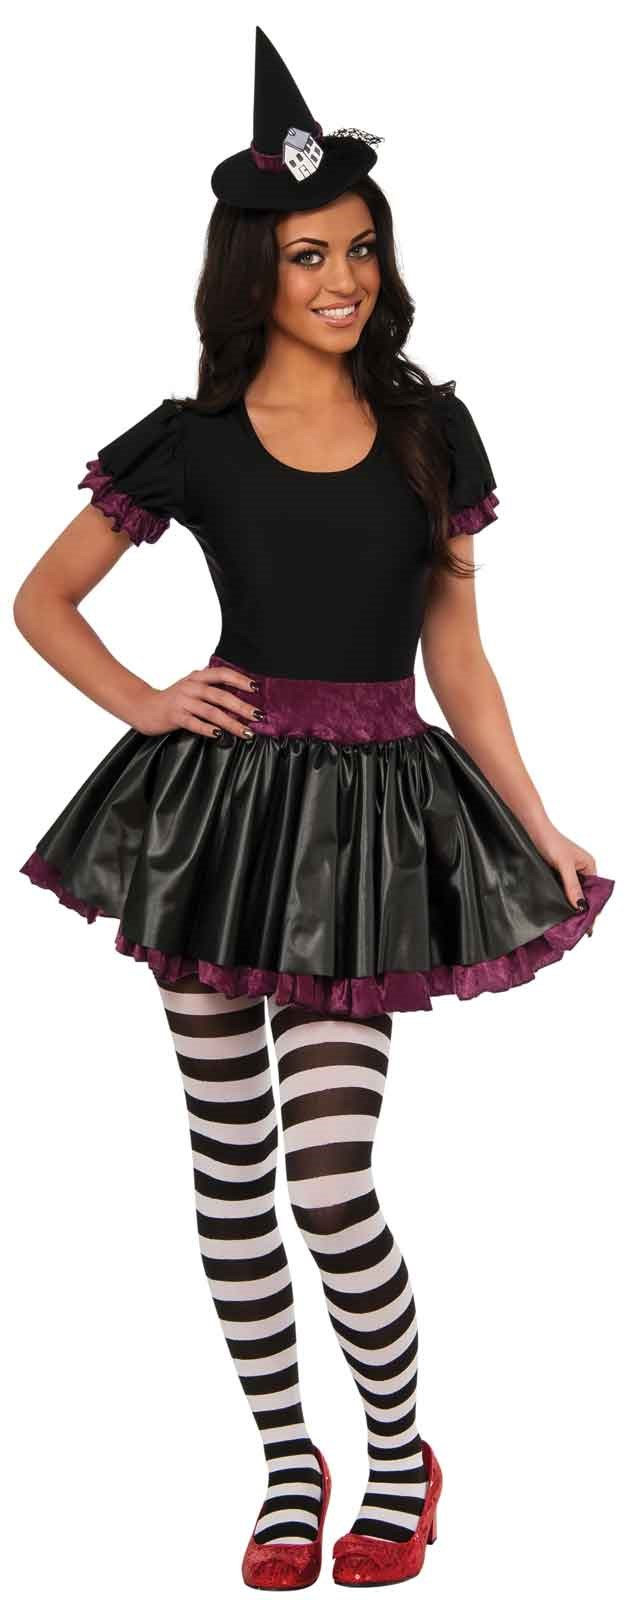 Wizard Of Oz - Wicked Witch of the East Dress | BuyCostumes.com